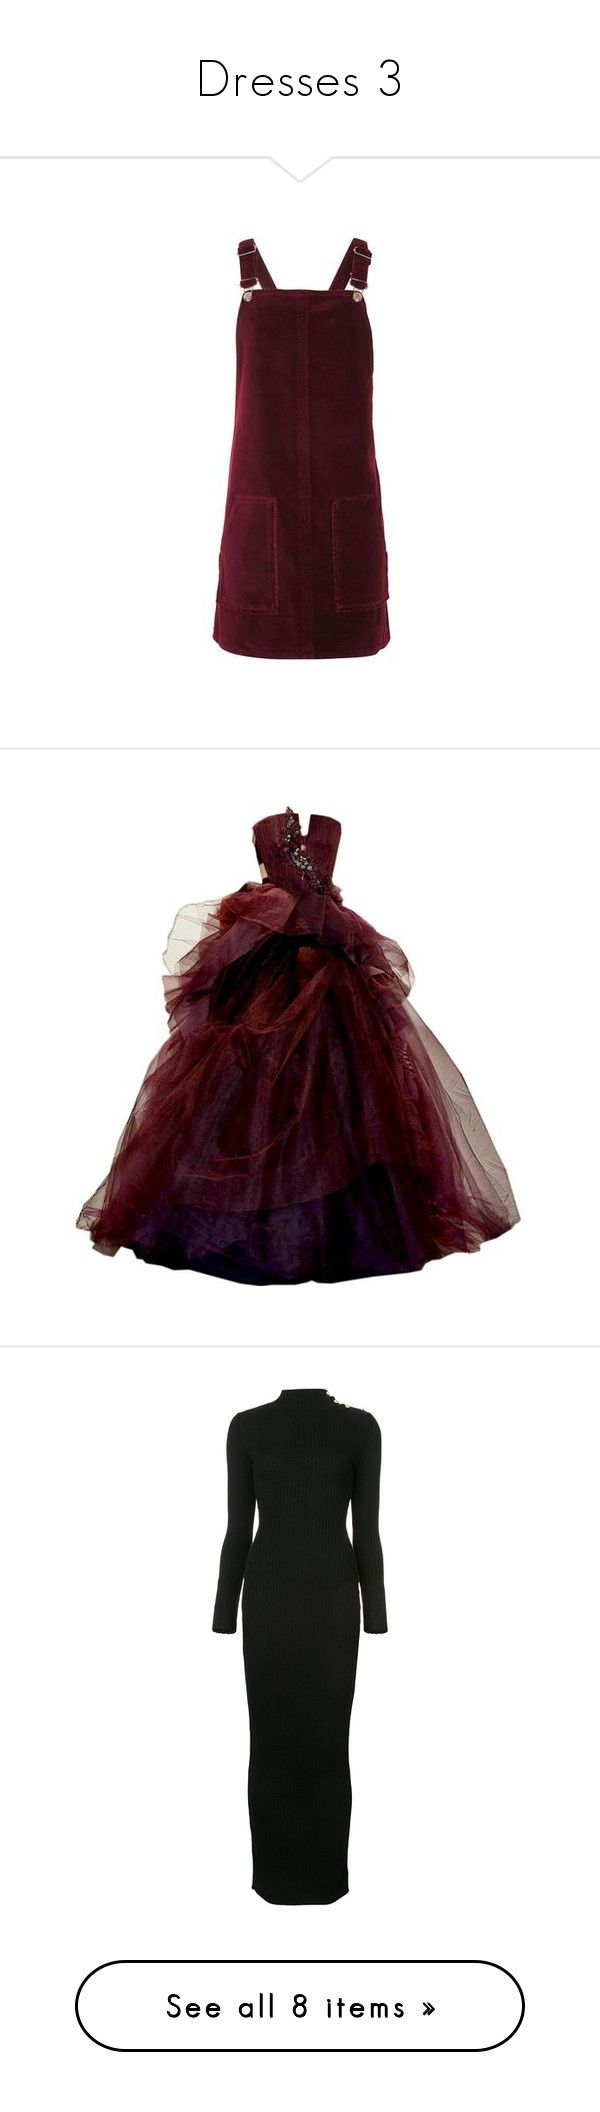 """""""Dresses 3"""" by fandom-girl365790 ❤ liked on Polyvore featuring dresses, wine, pinny dress, long sleeve purple dress, long-sleeve velvet dresses, long sleeve day dresses, pinafore dress, gowns, long dresses and red dresses"""